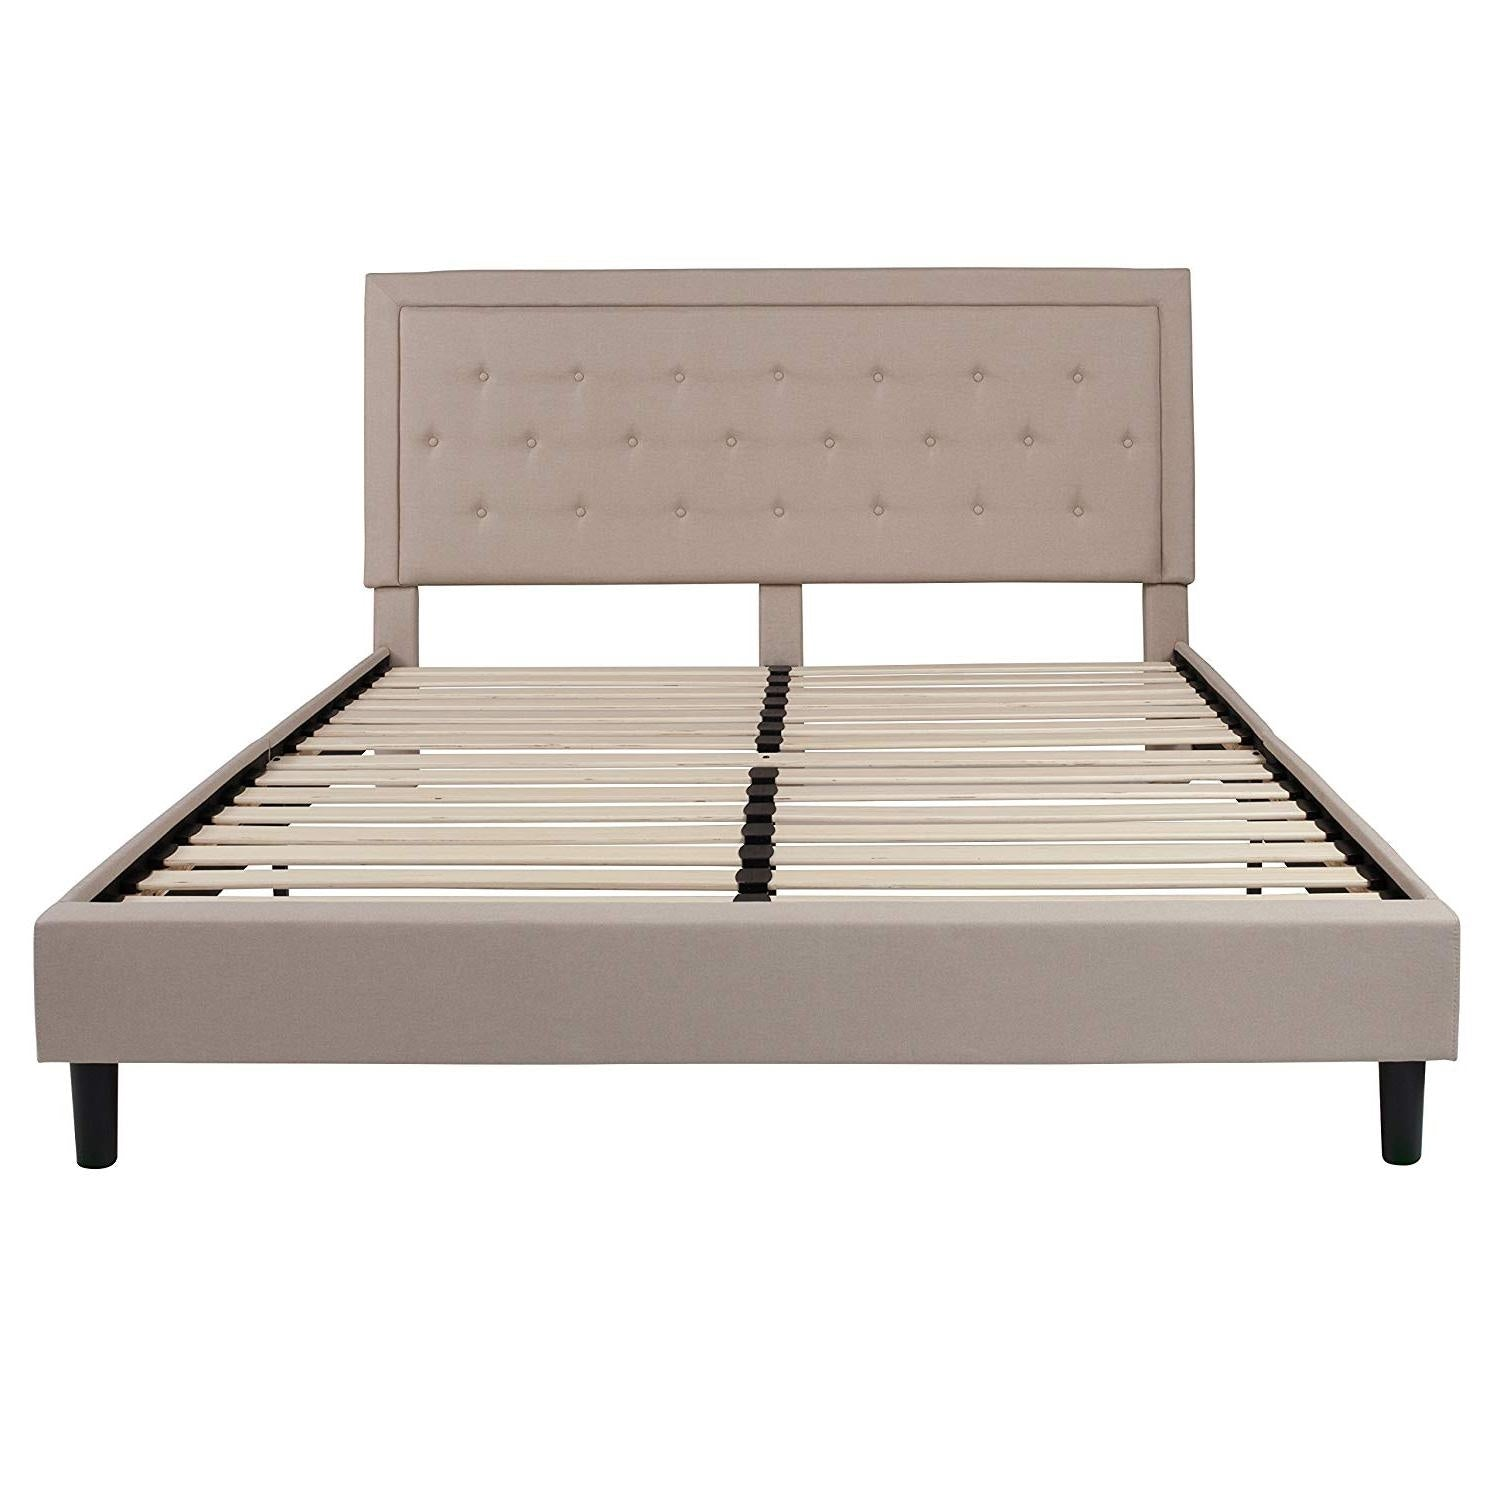 King Beige Upholstered Platform Bed Frame with Button Tufted Headboard